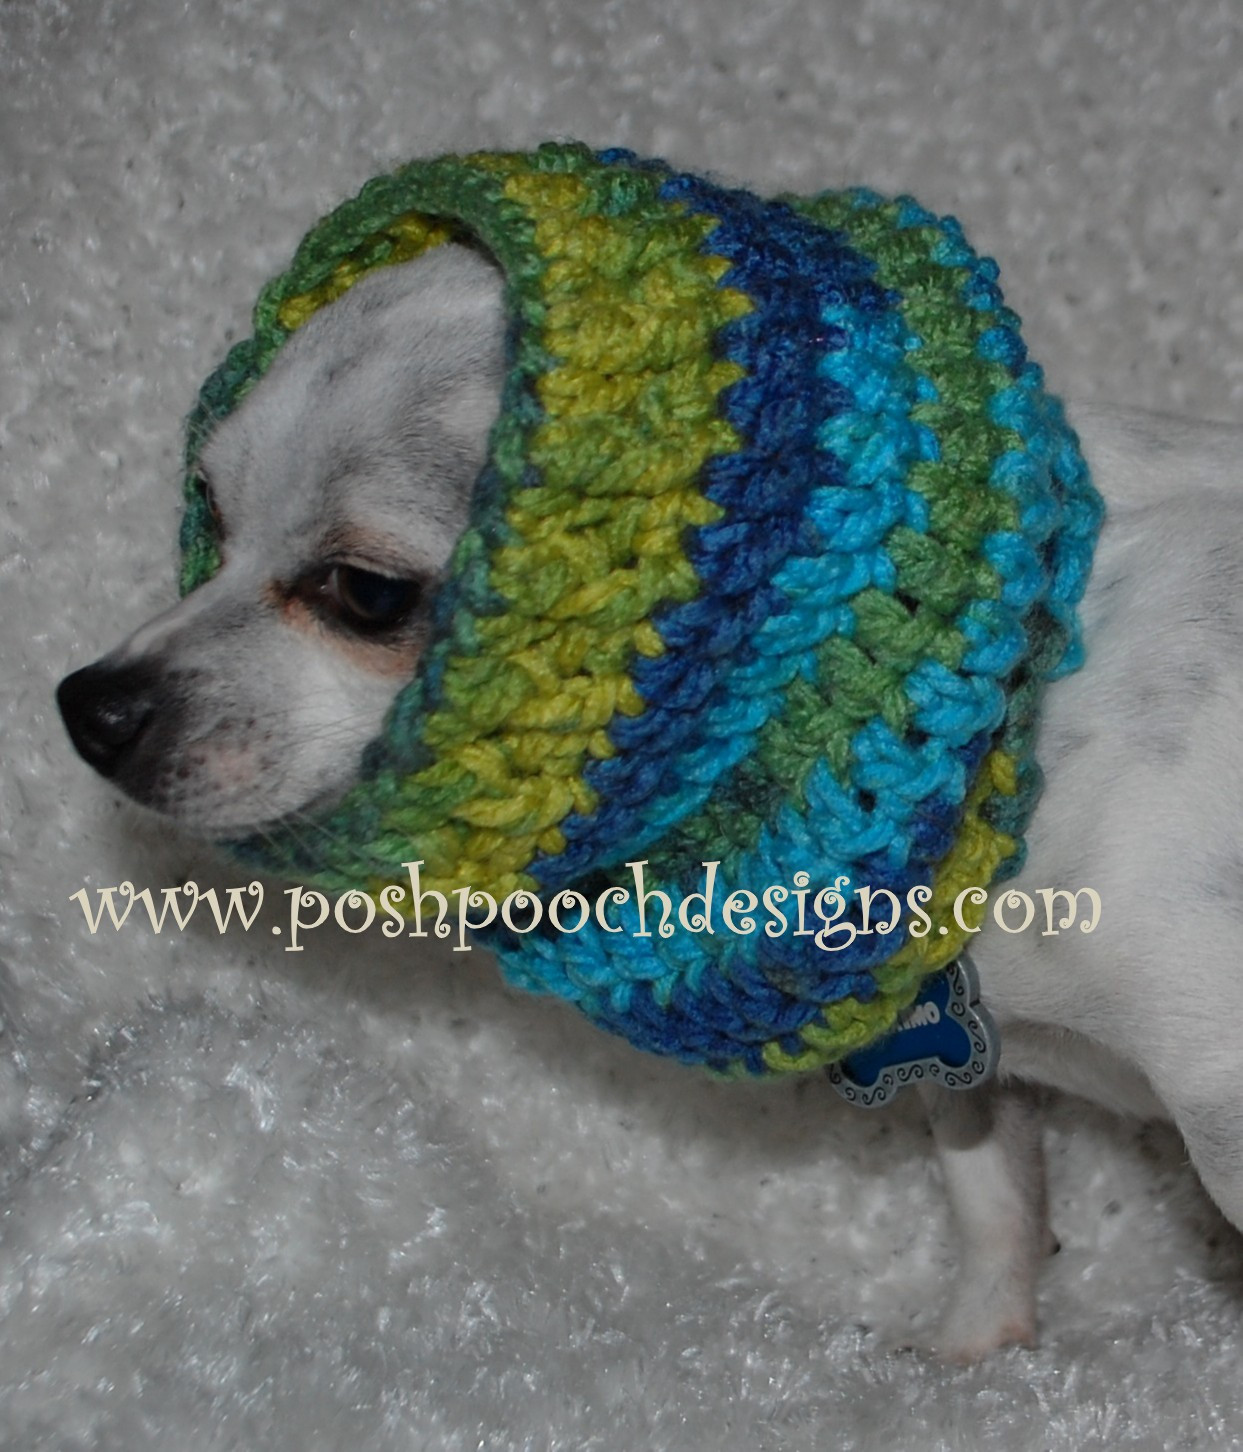 Crochet Dog Lovely Posh Pooch Designs Dog Clothes Dog Snood Crochet Pattern Of Perfect 50 Images Crochet Dog